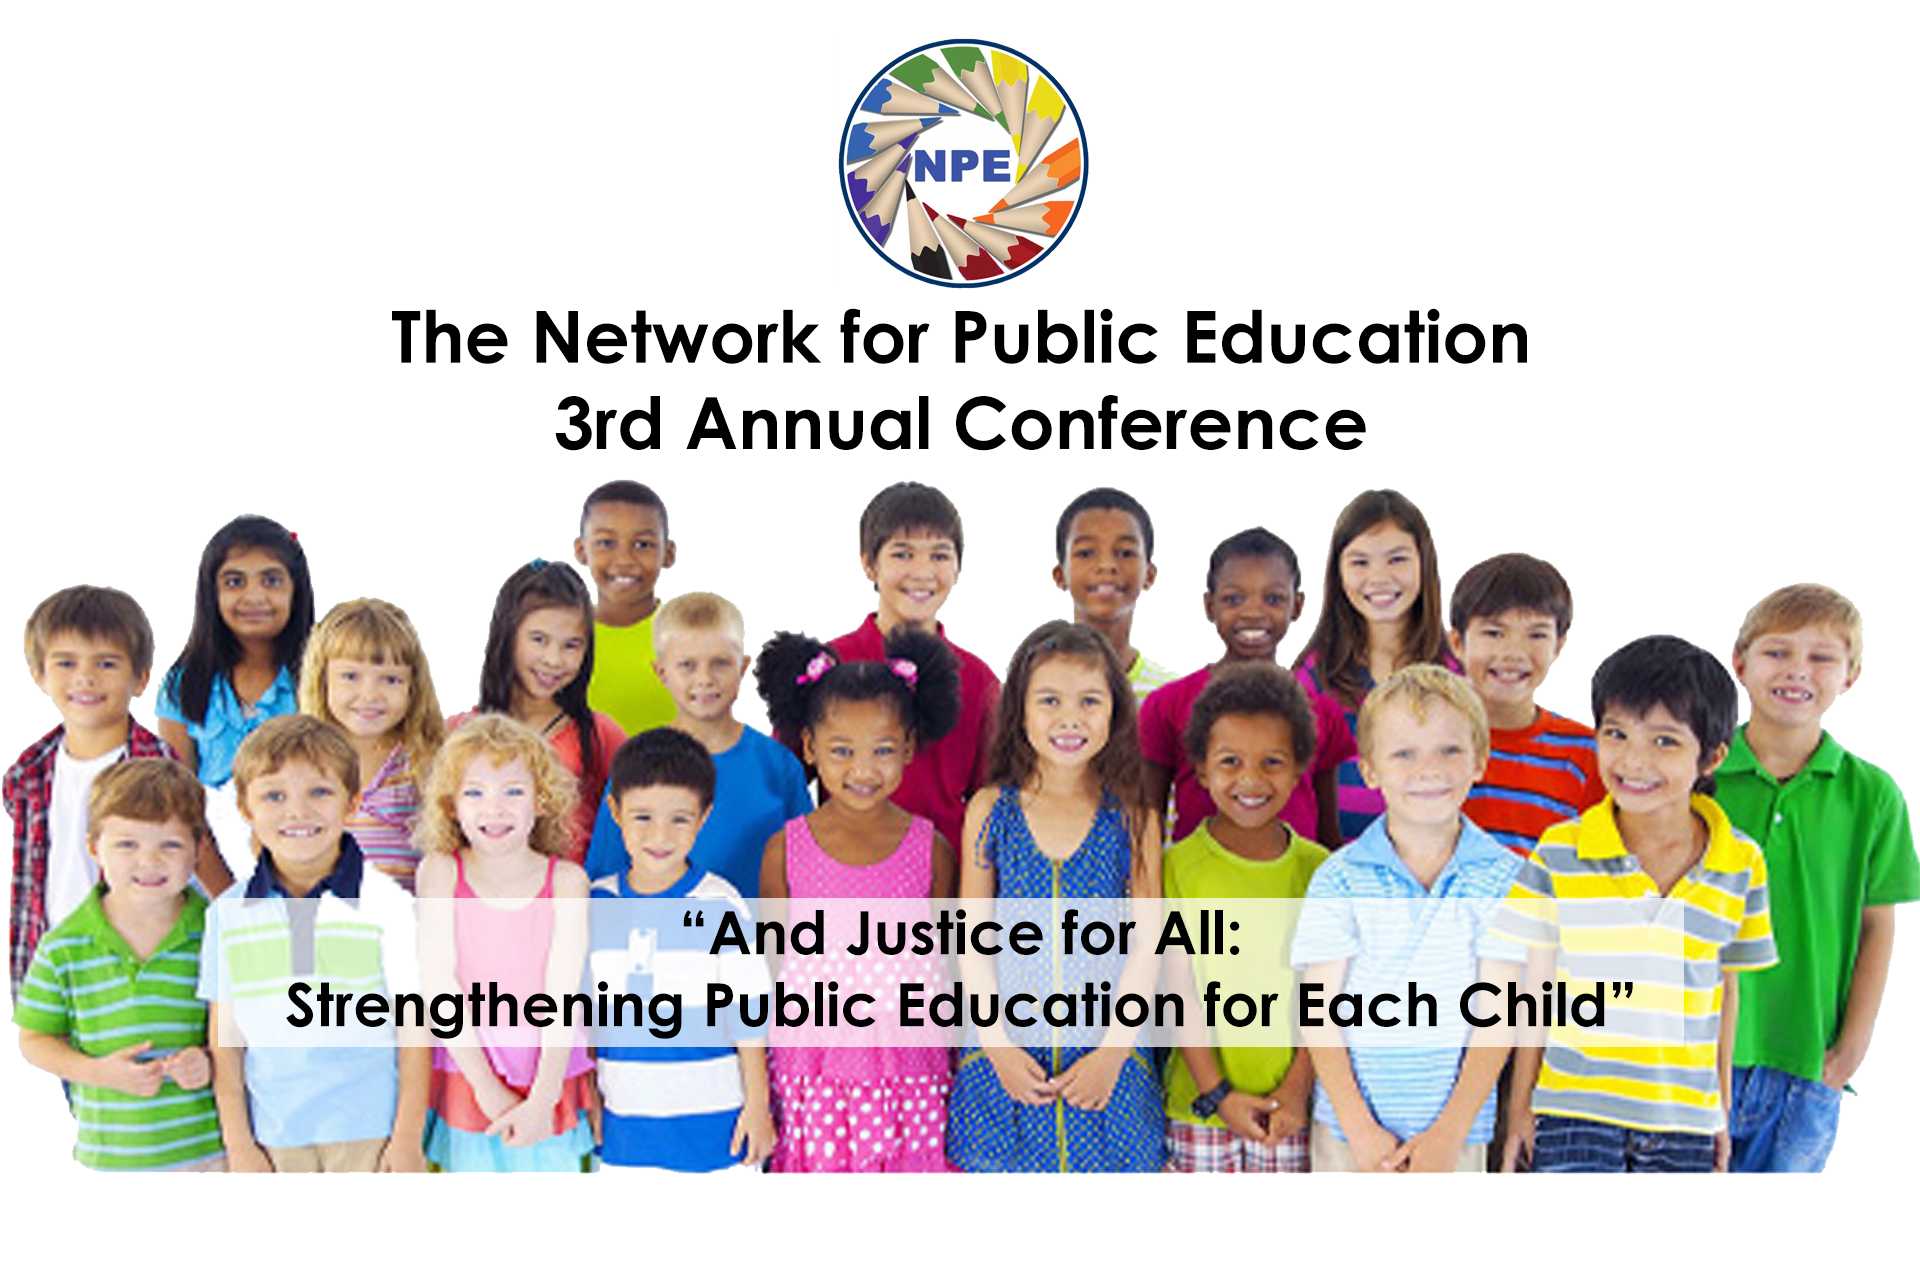 NPE's 3rd Annual Conference in Raleigh NC